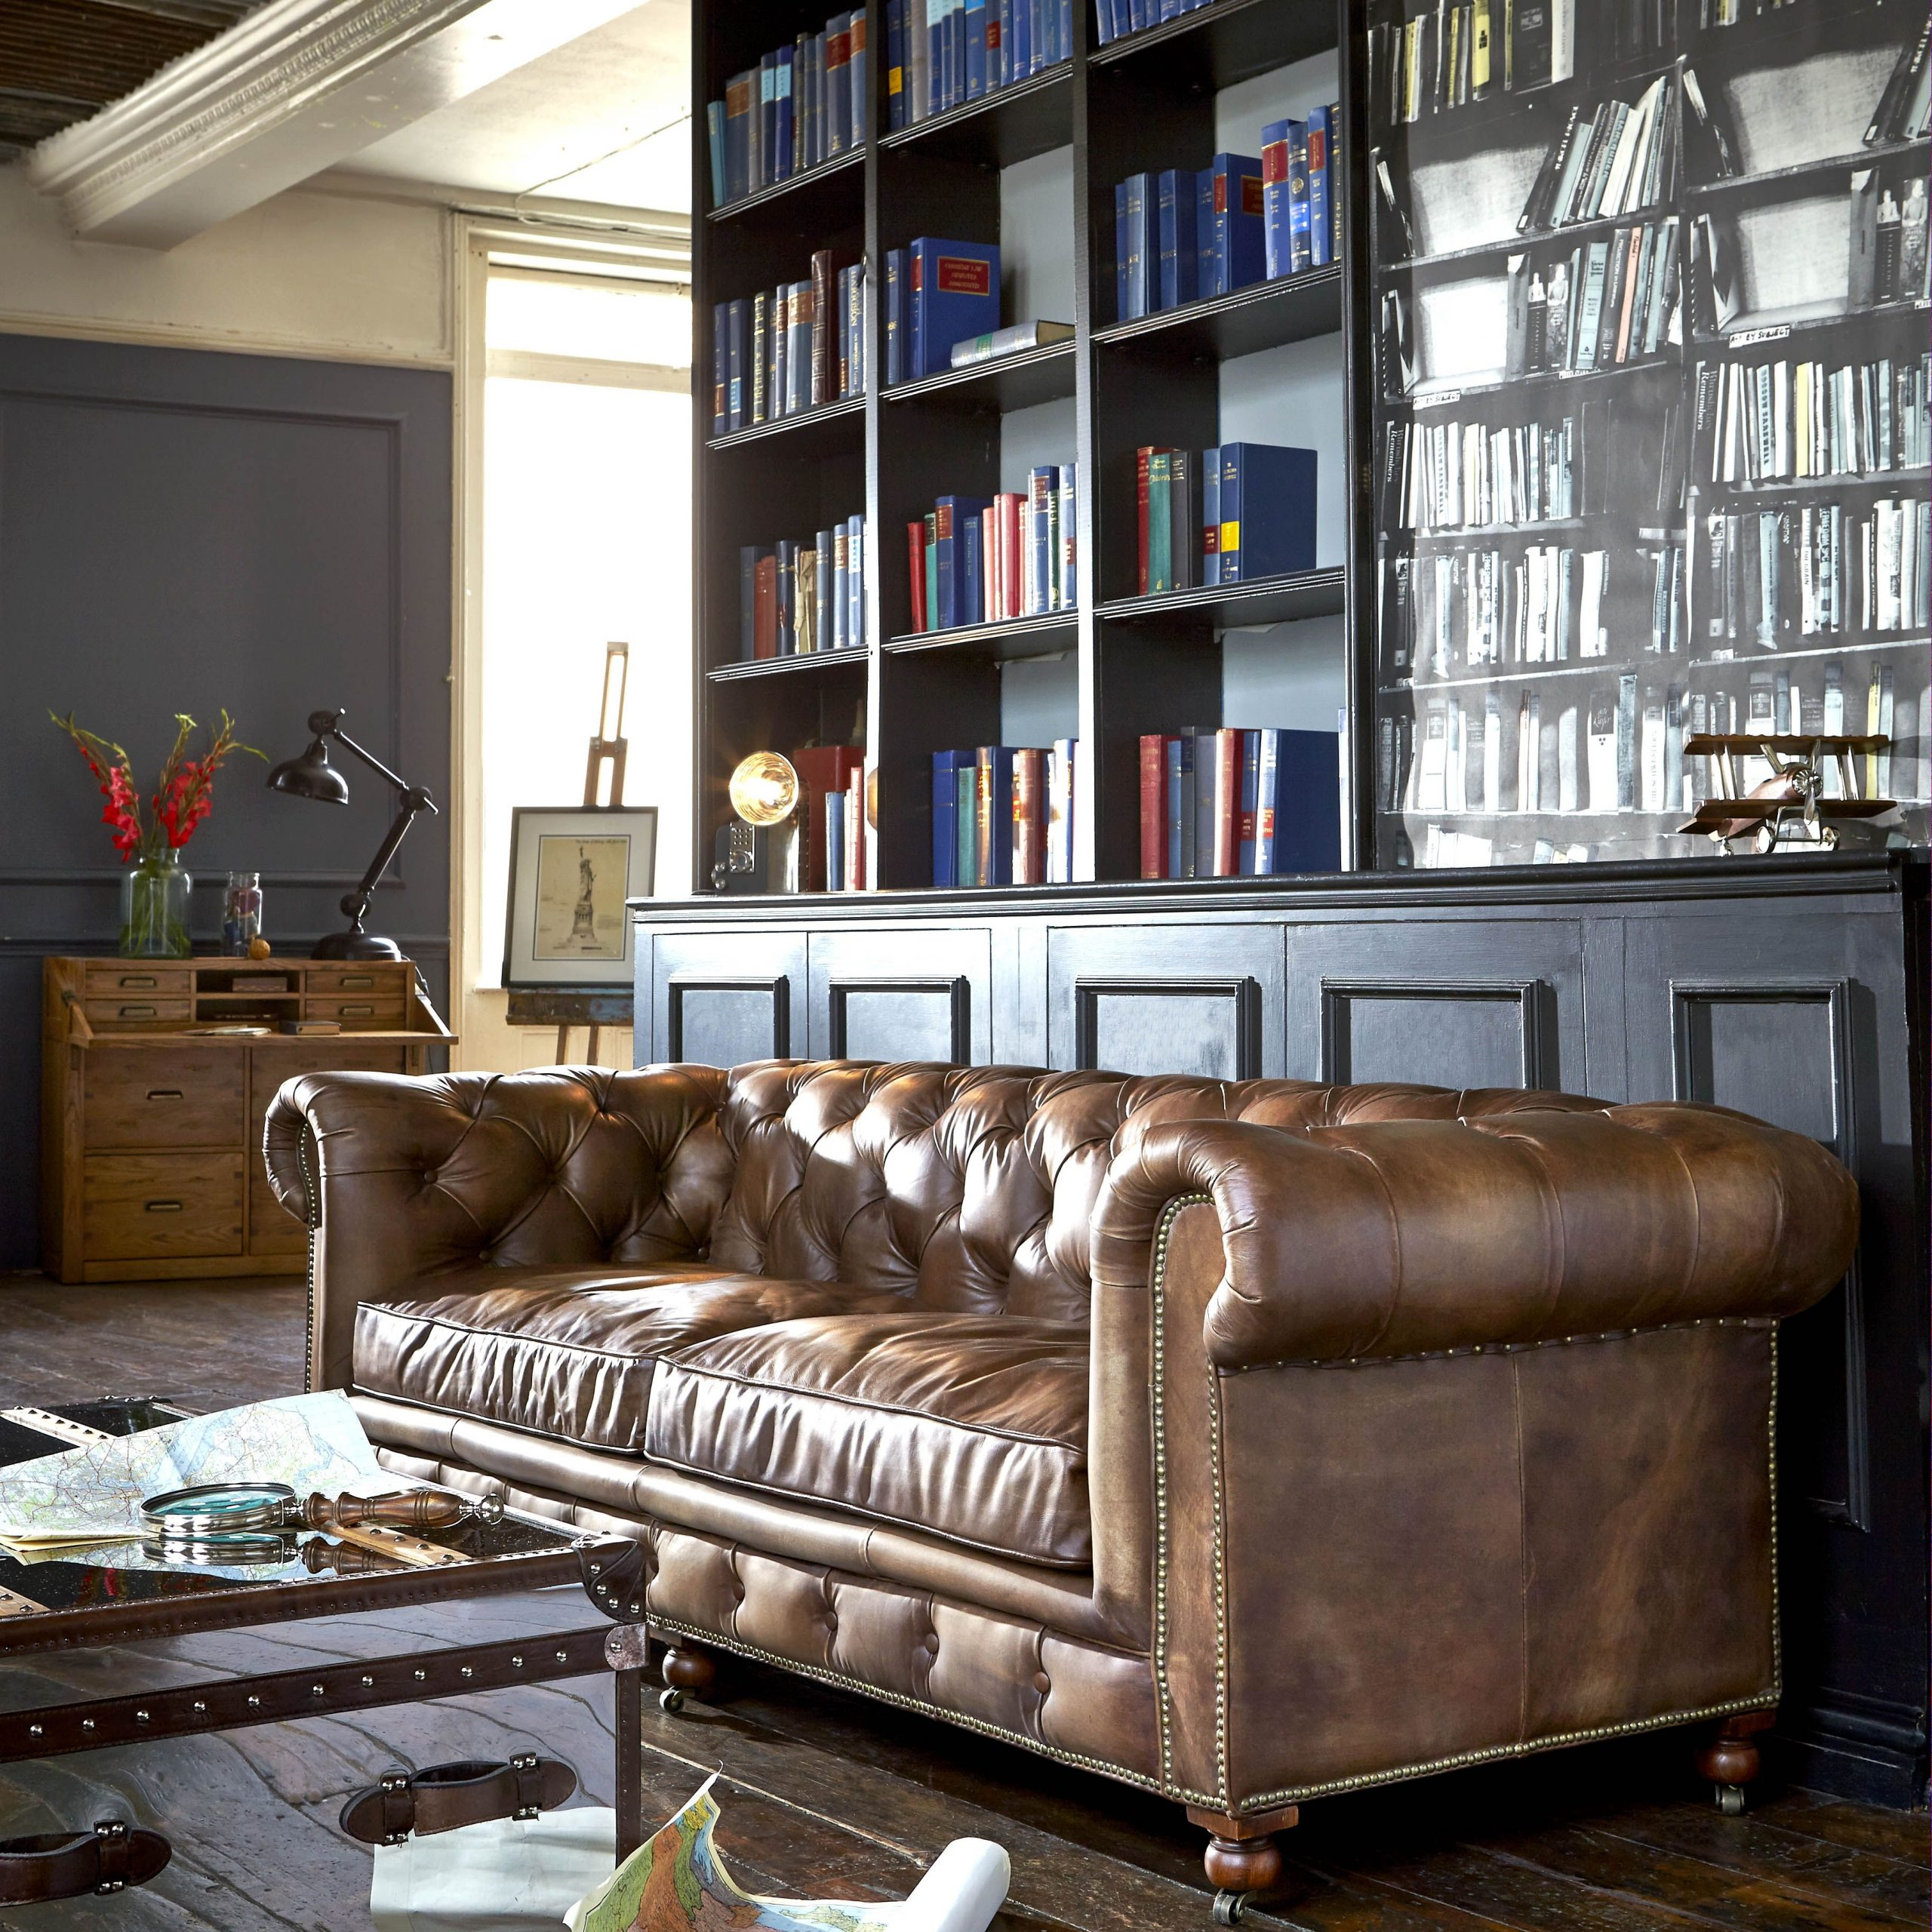 c ae758e95b on Traditional Style Leather Sofas id=1005455